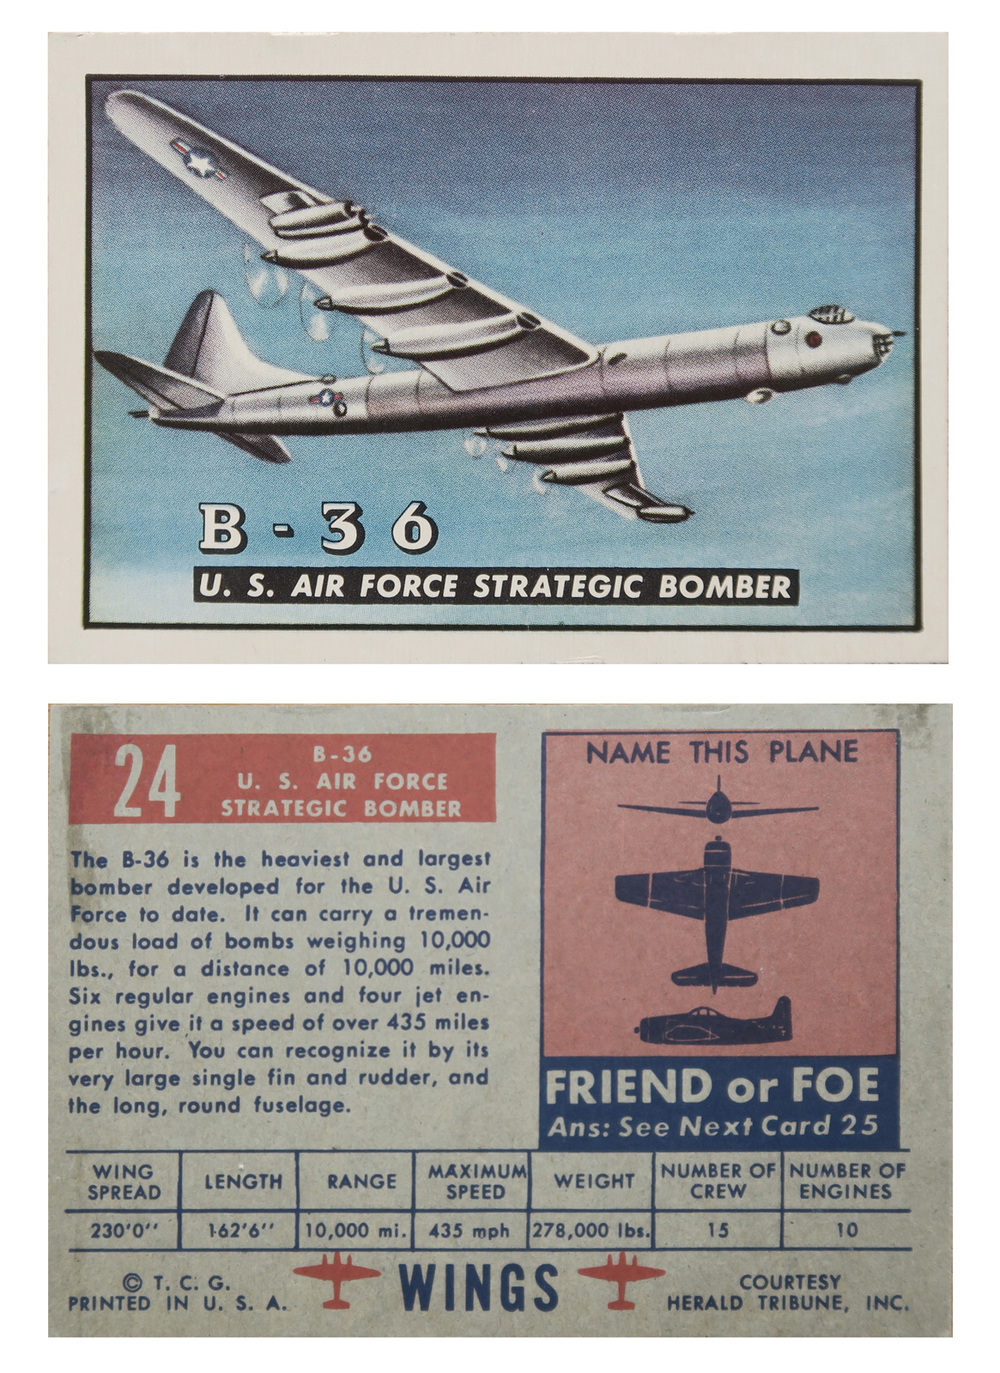 B-36 U.S. Air Force Strategic Bomber #24   Series: Wings Manufacture: Topps Chewing Gum Card Dimensions: 3.75 x 2.625 inches USA -1952